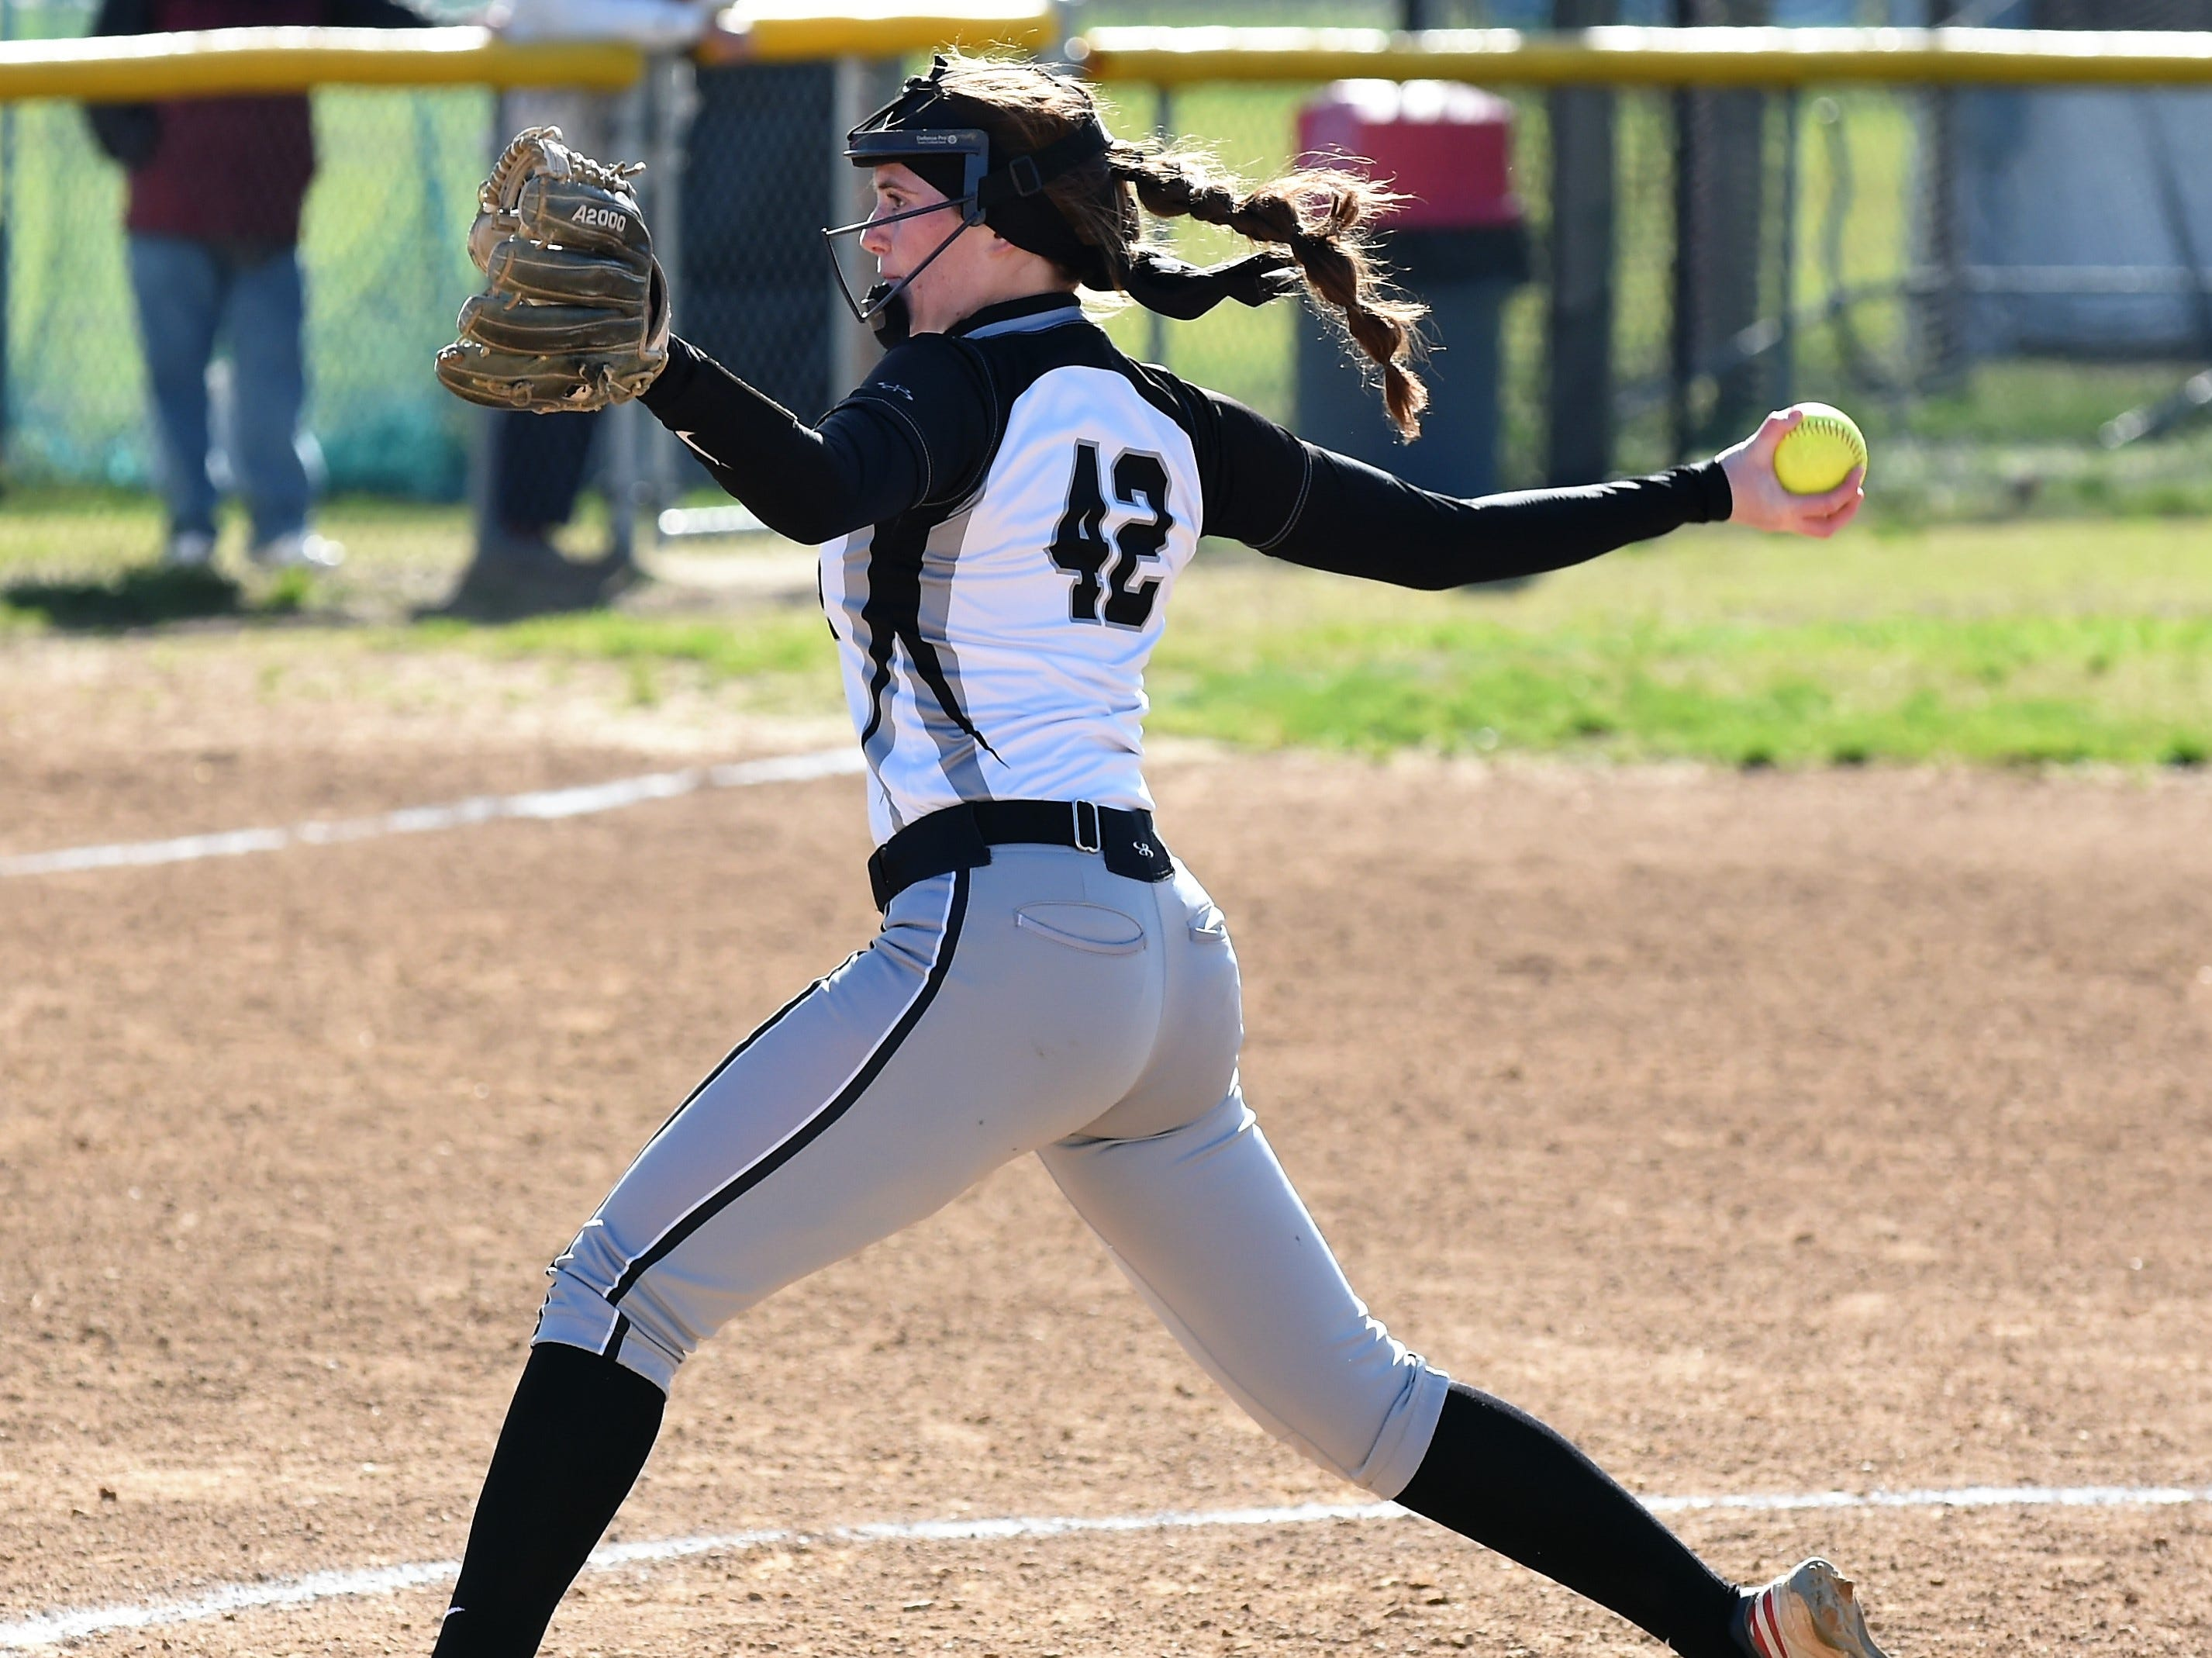 Padua pitcher Melanie Grant pitches against Delmar on Monday, April 15, 2019. The Wildcats defeated Padua Academy, 6-2.